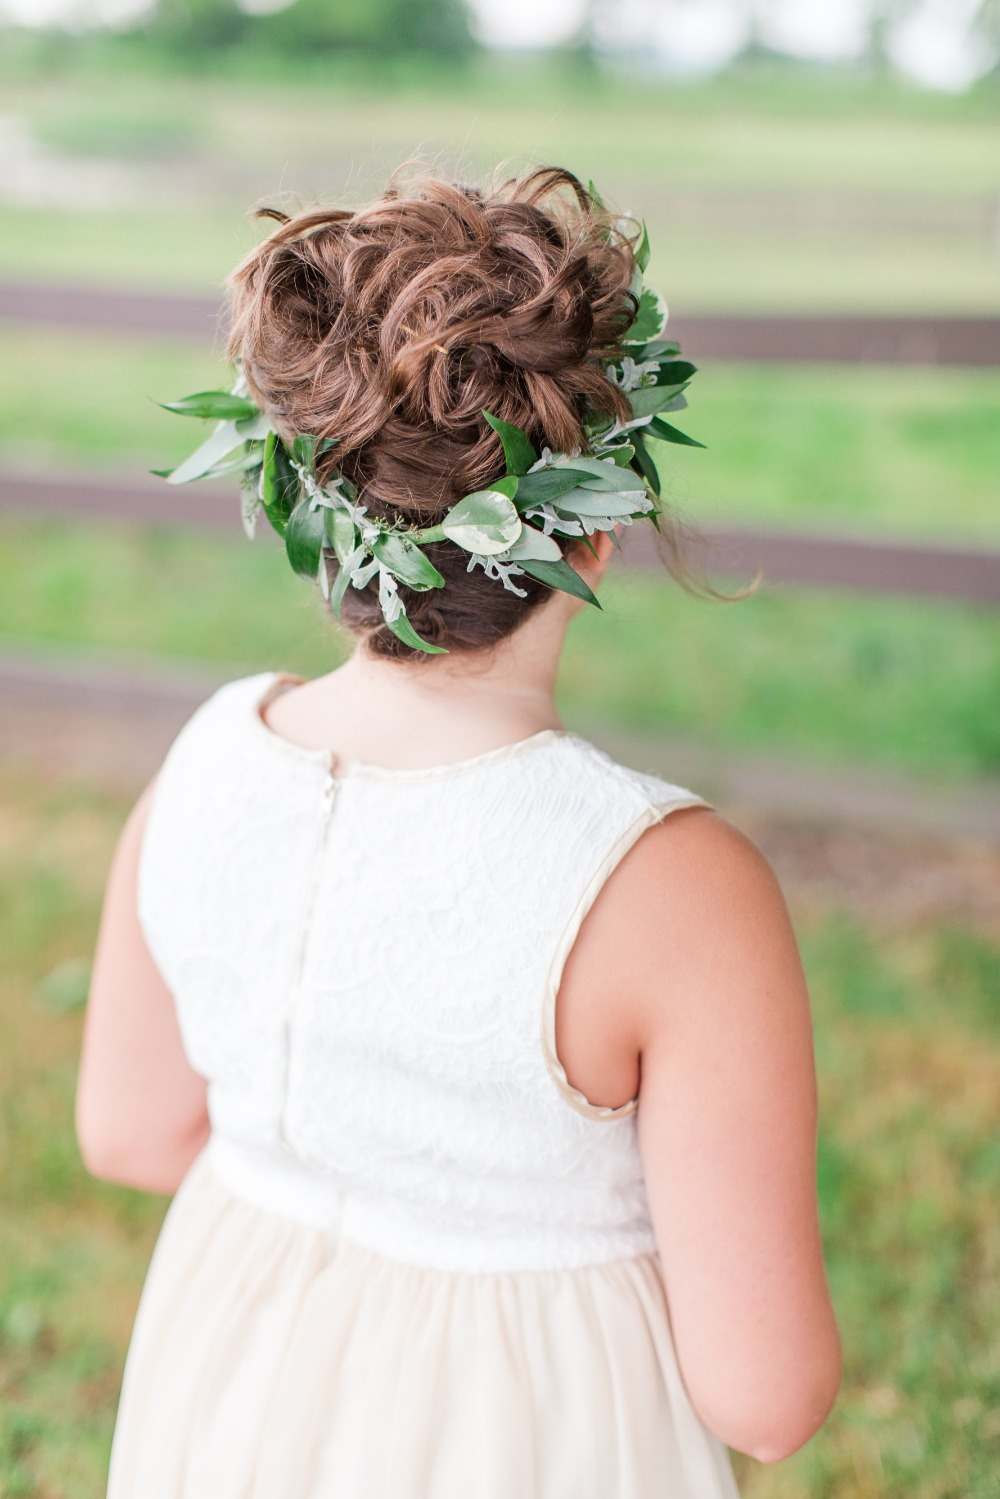 Flower girl crown and hair